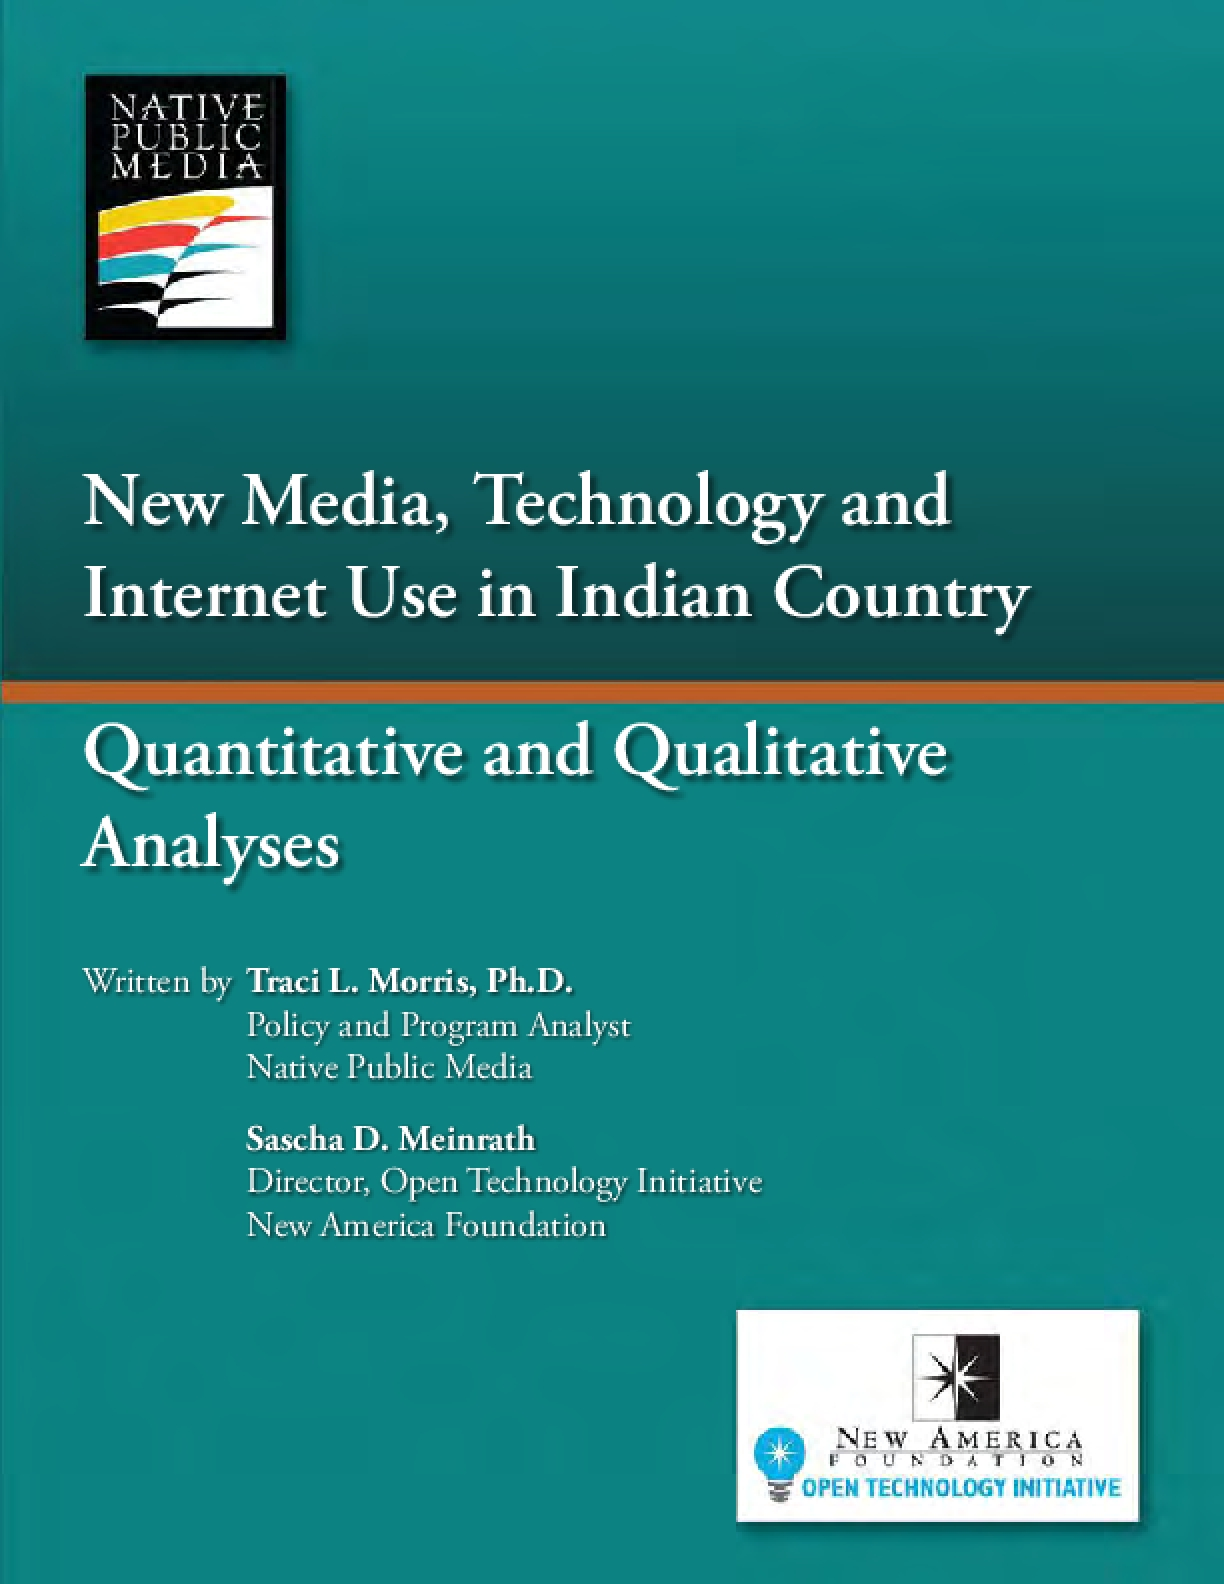 New Media, Technology and Internet Use in Indian Country